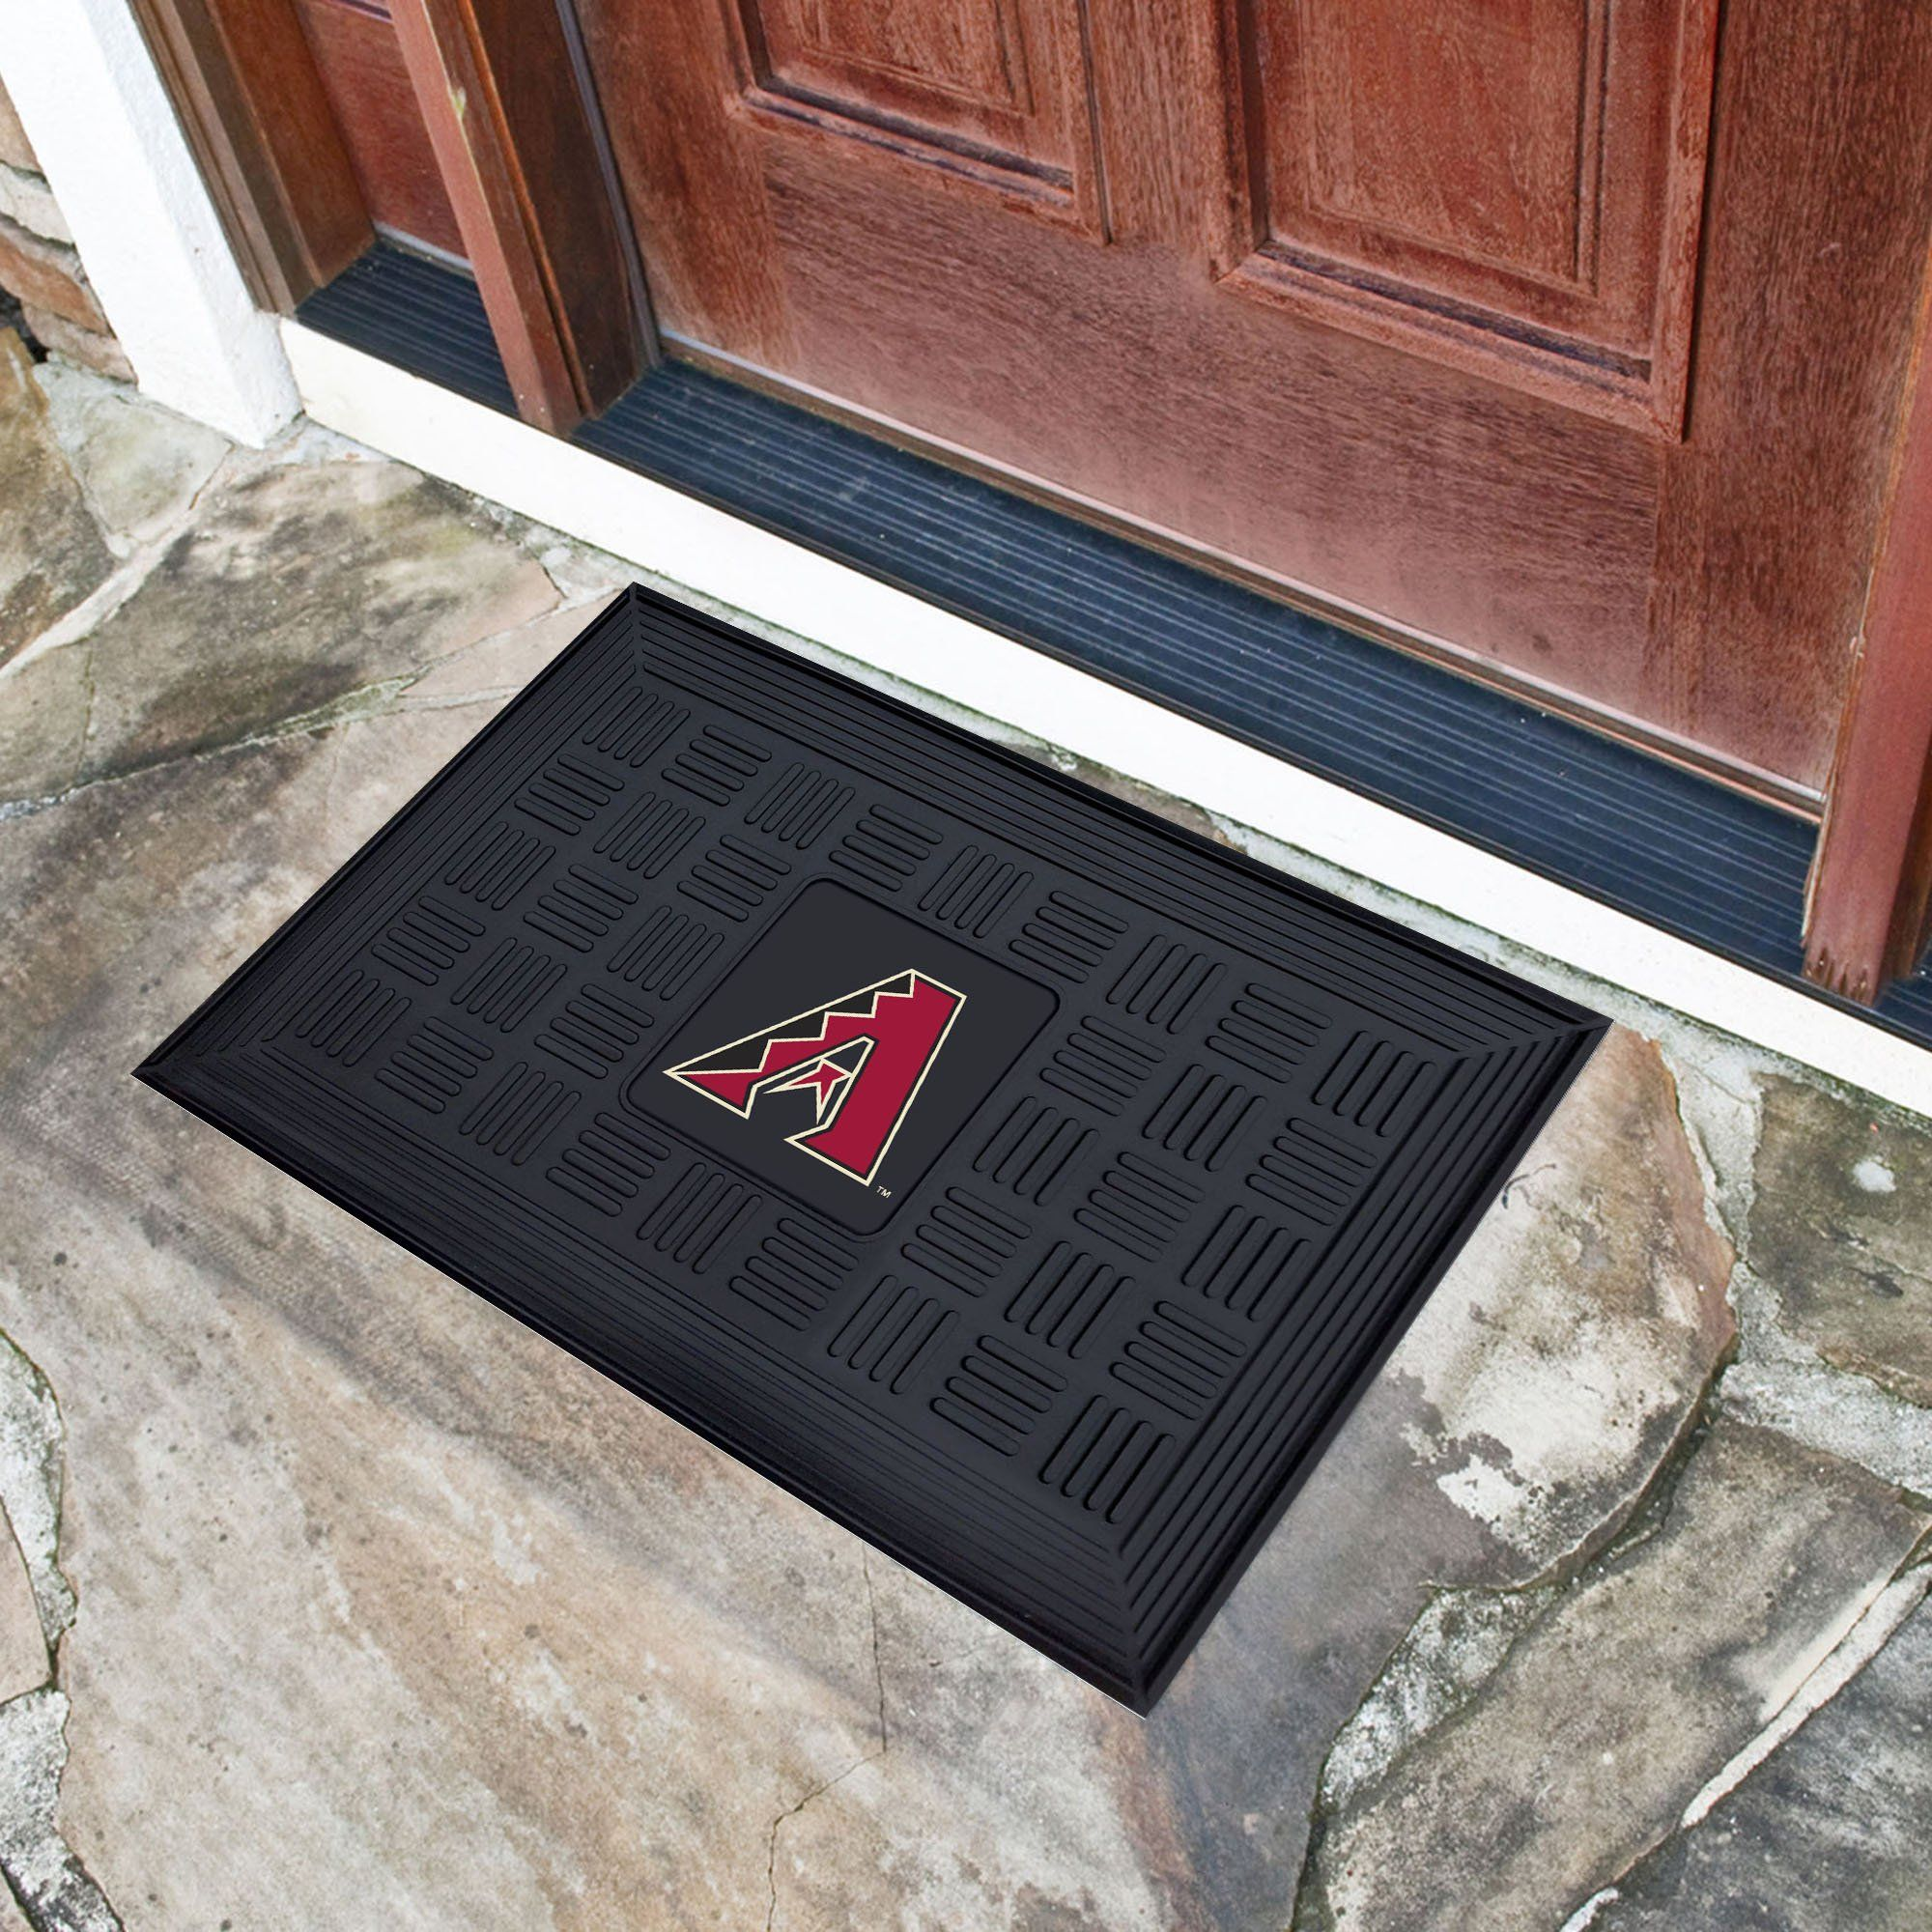 MLB - Medallion Door Mat MLB Mats, Medallion Door Mat, MLB, Home Fan Mats Arizona Diamondbacks